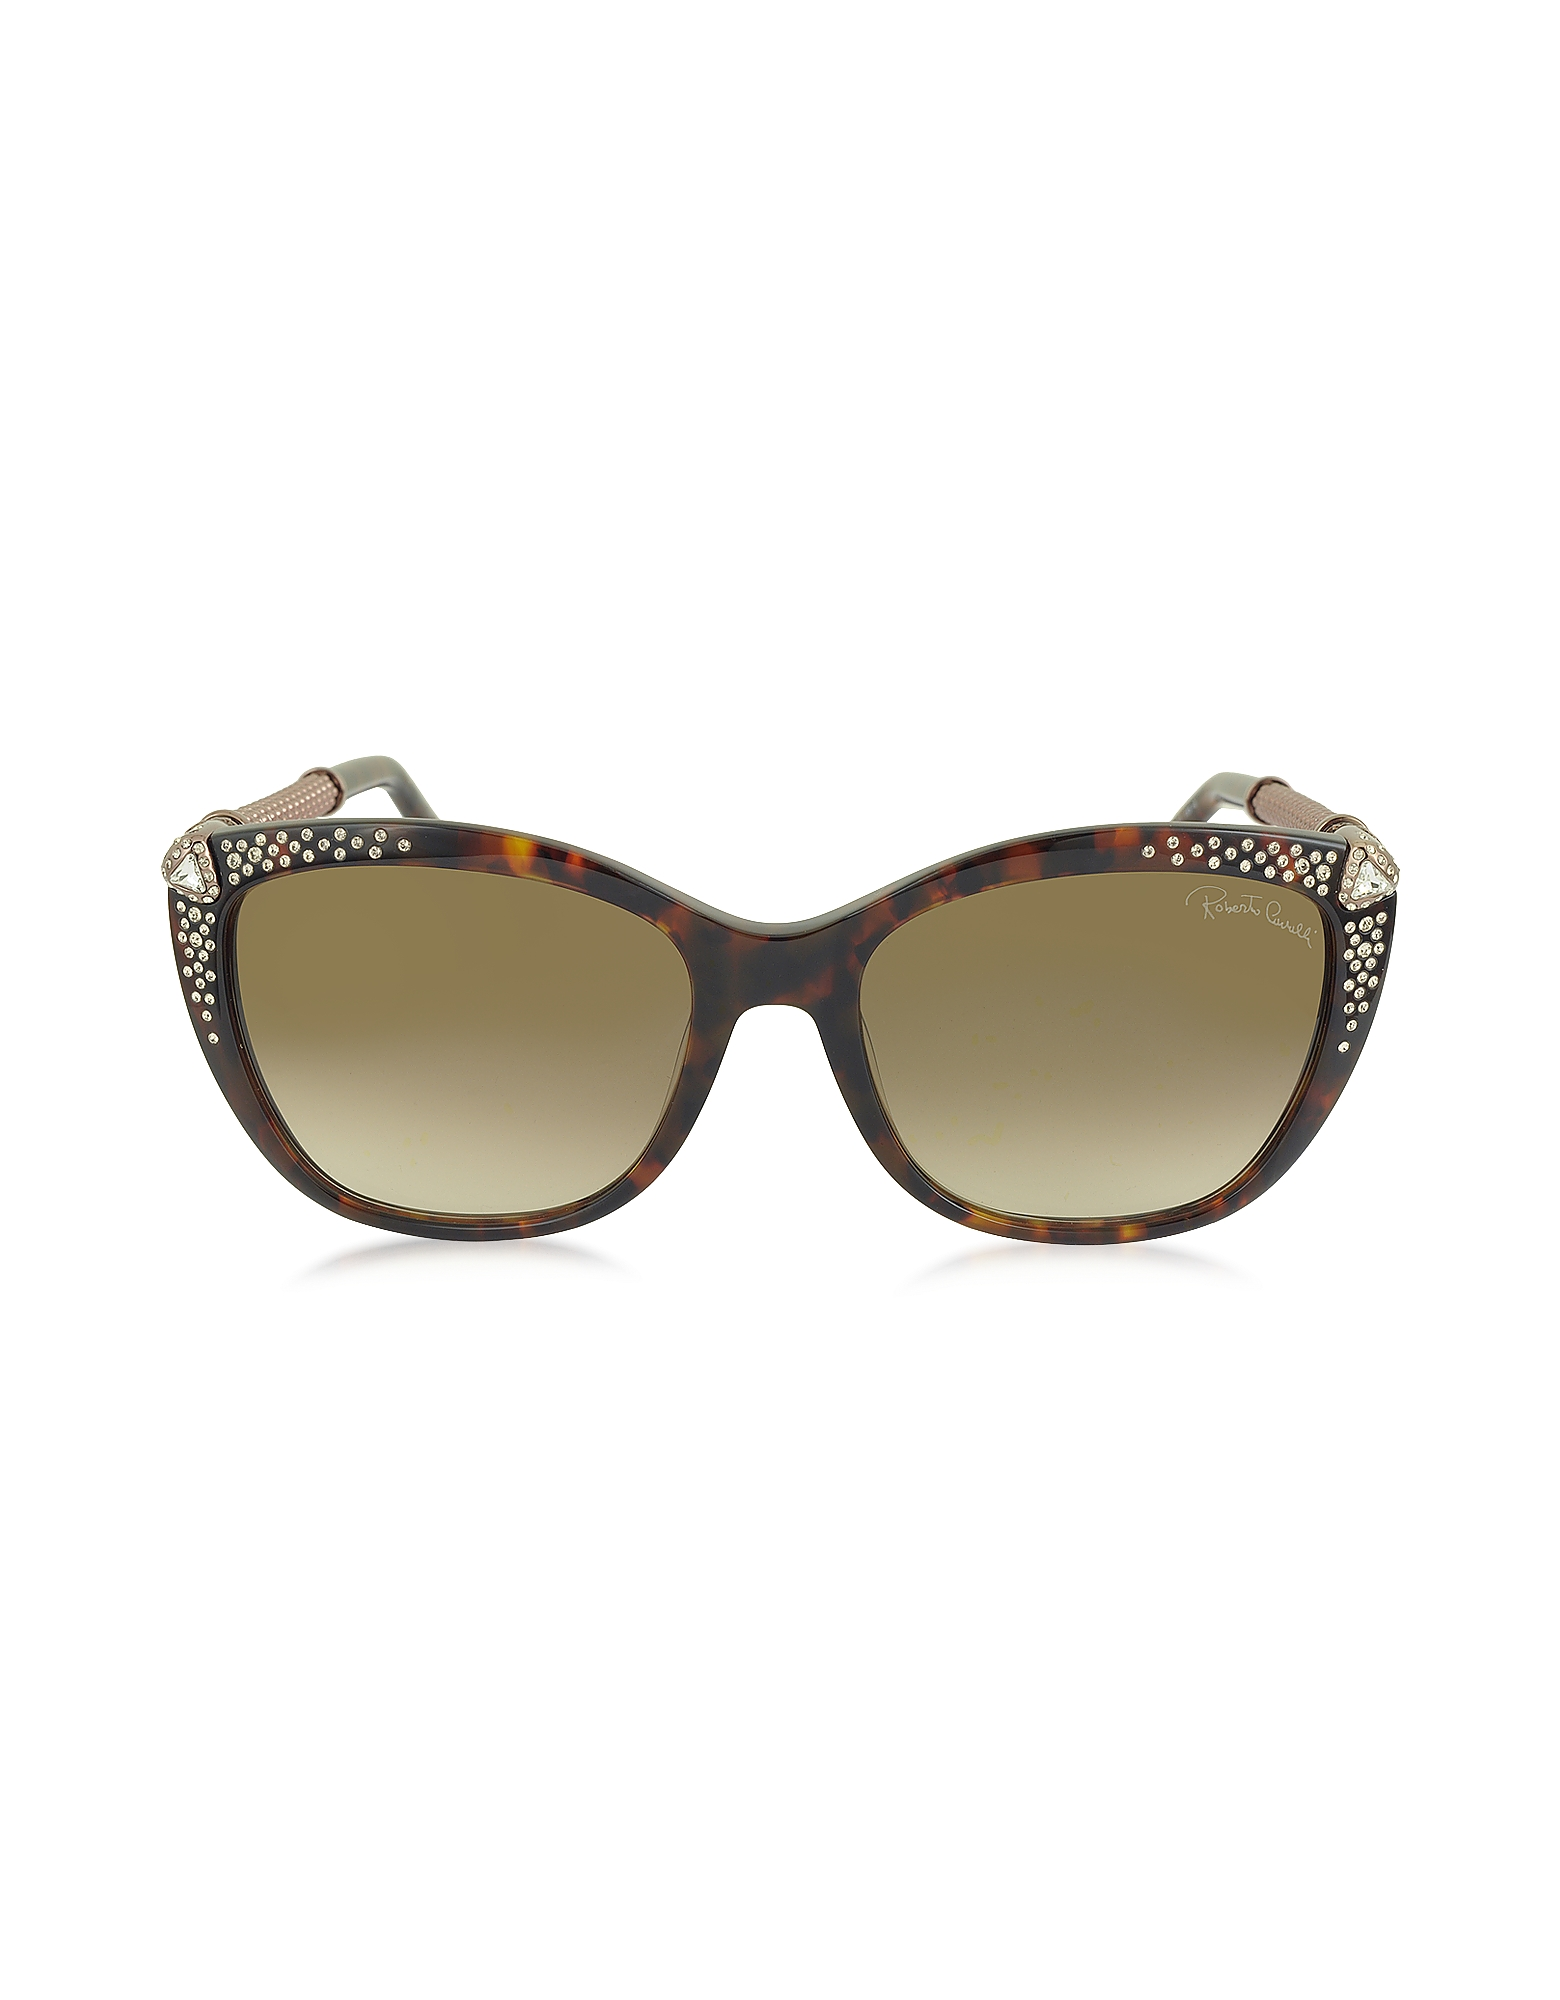 Roberto Cavalli Sunglasses, TALITHA 978S Acetate and Crystals Cat Eye Women's Sunglasses